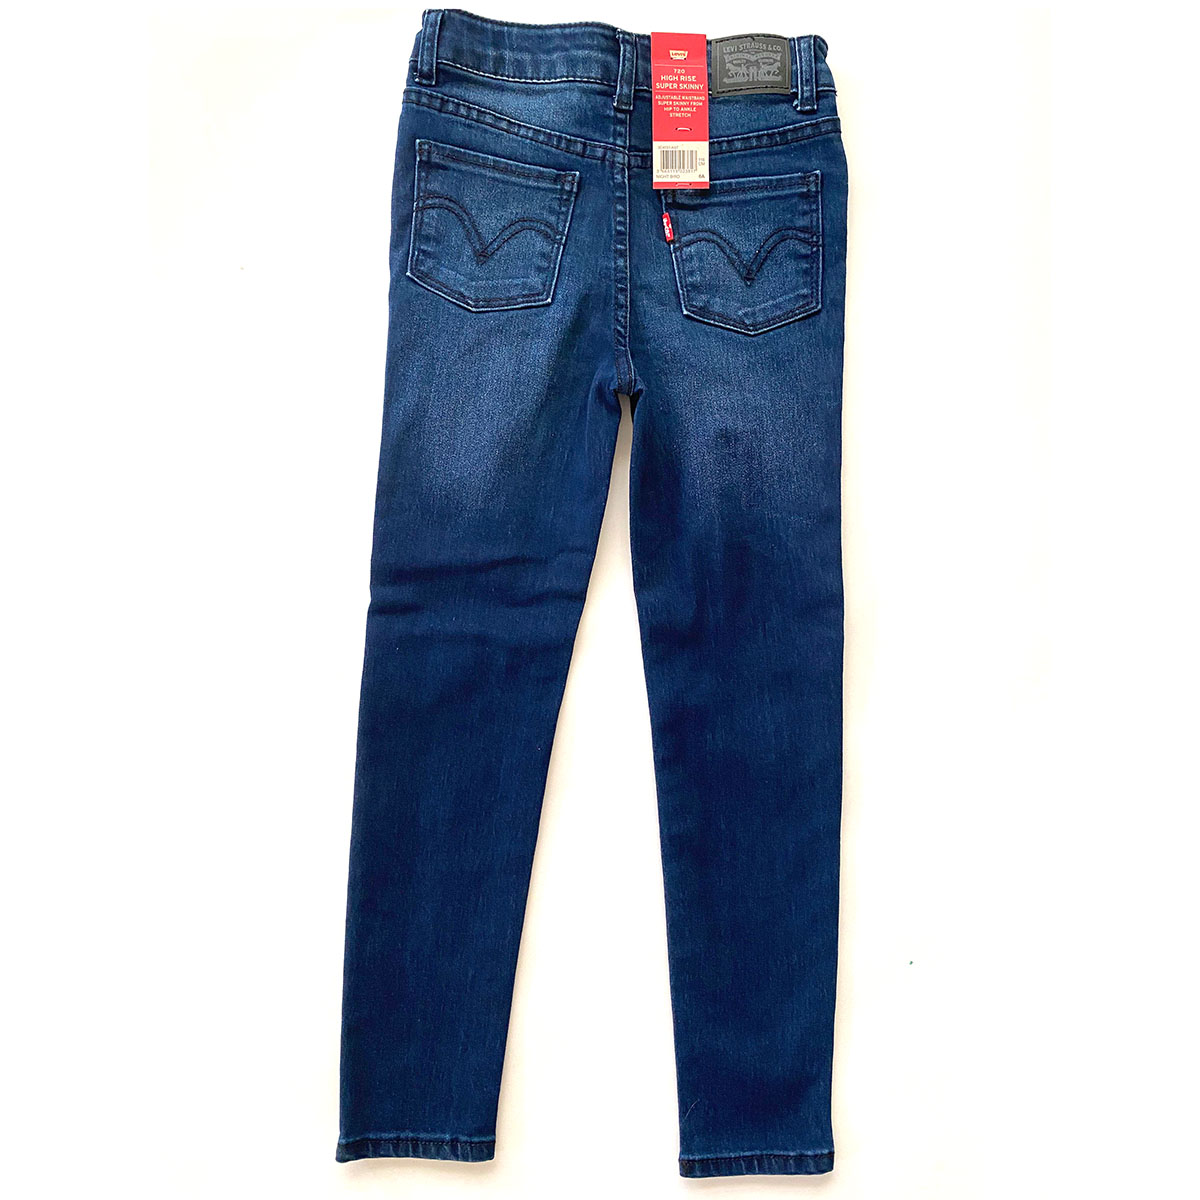 Levis 720 high rise super skinny jeans Minirein